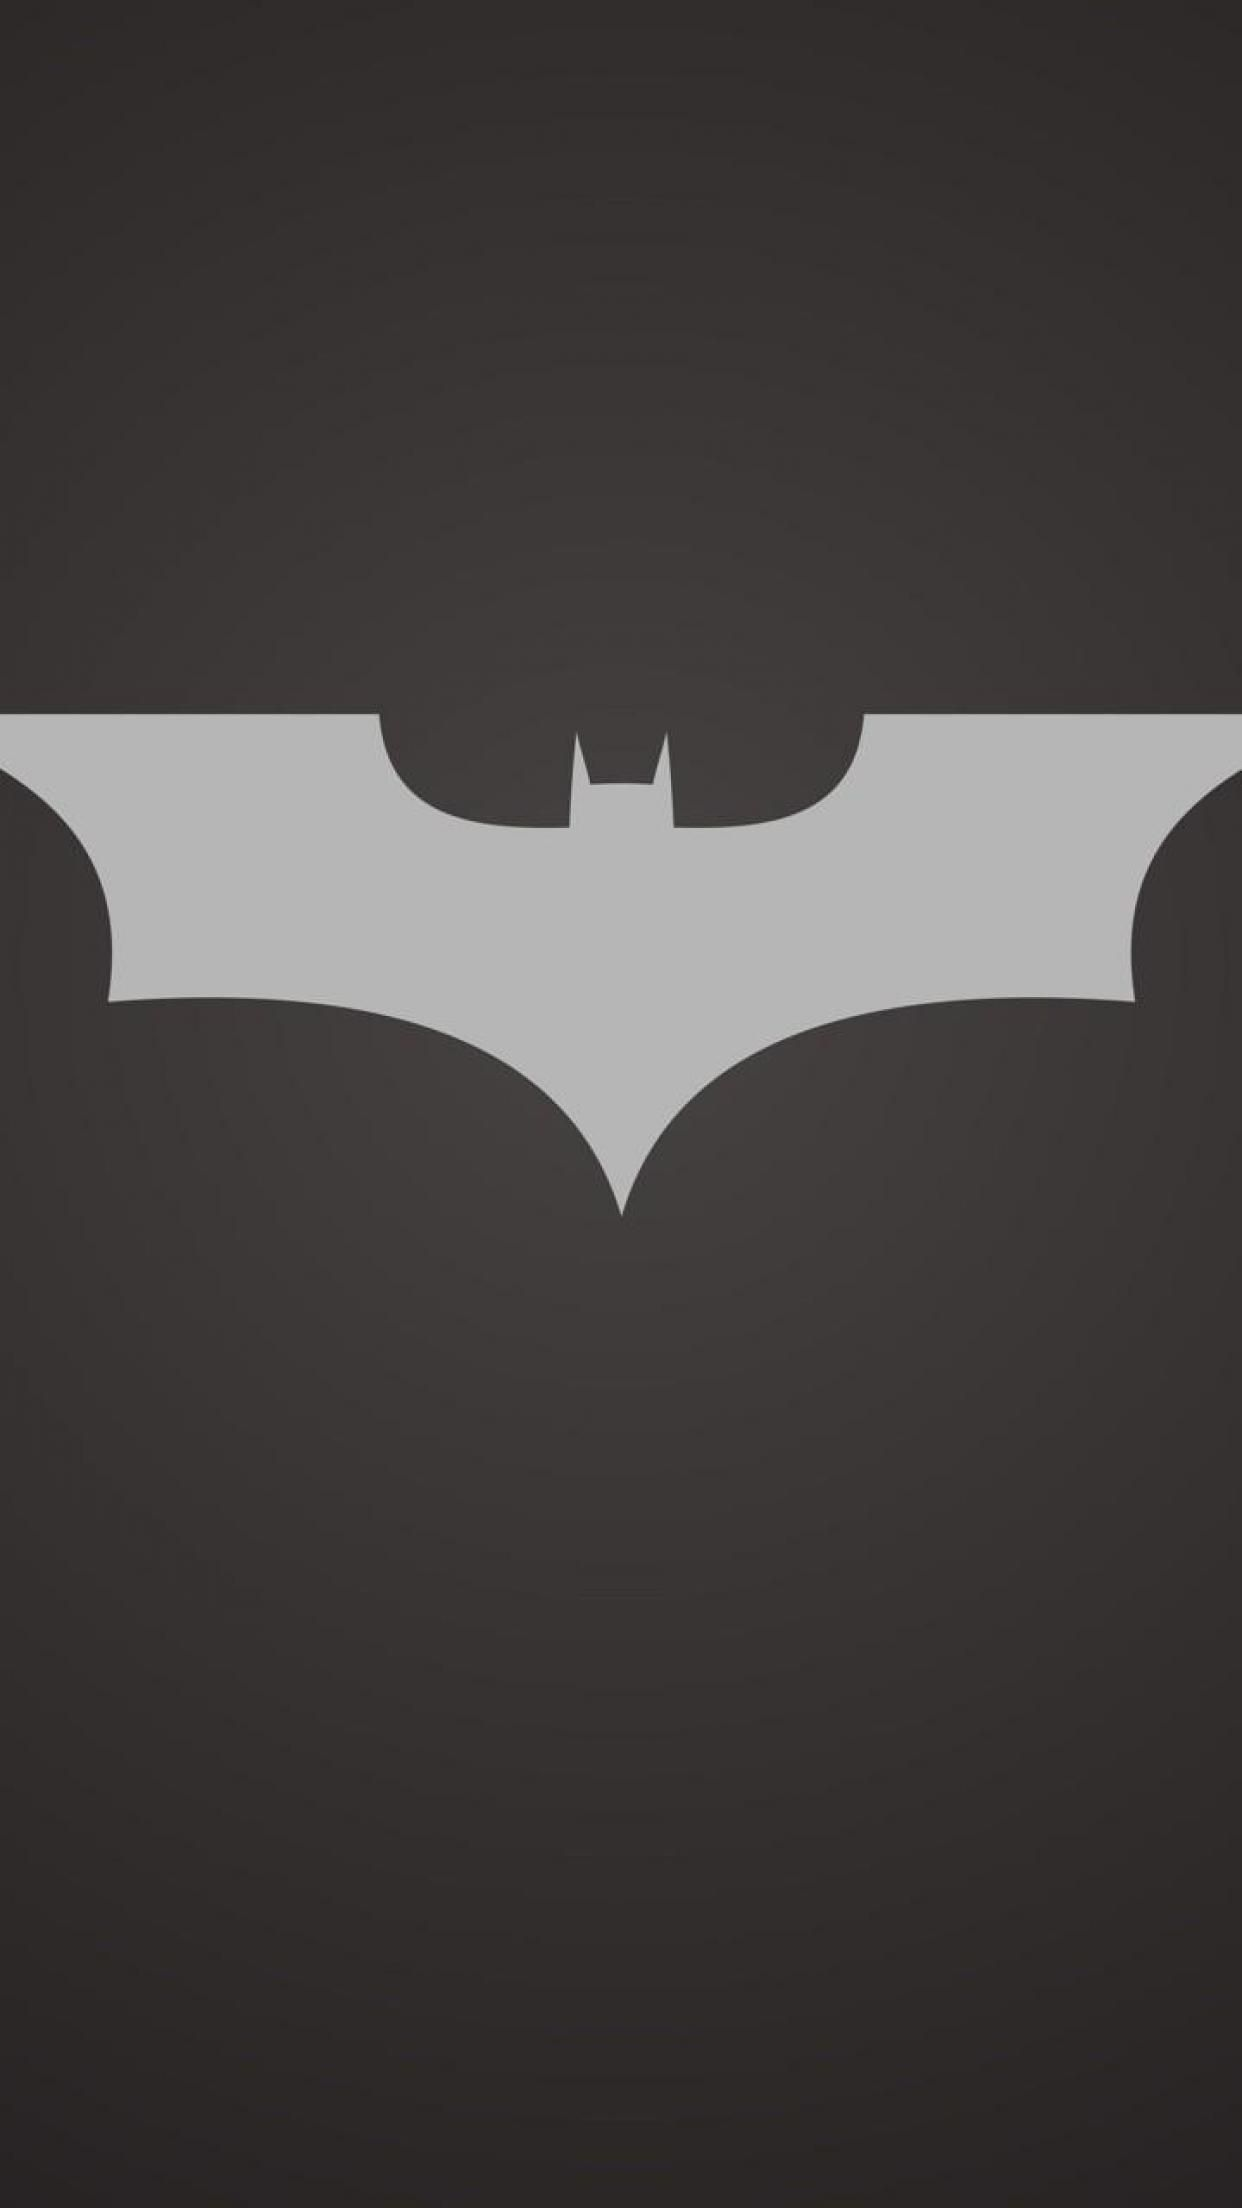 batman wallpaper - iphone, ipad, ipod forums at imore | android